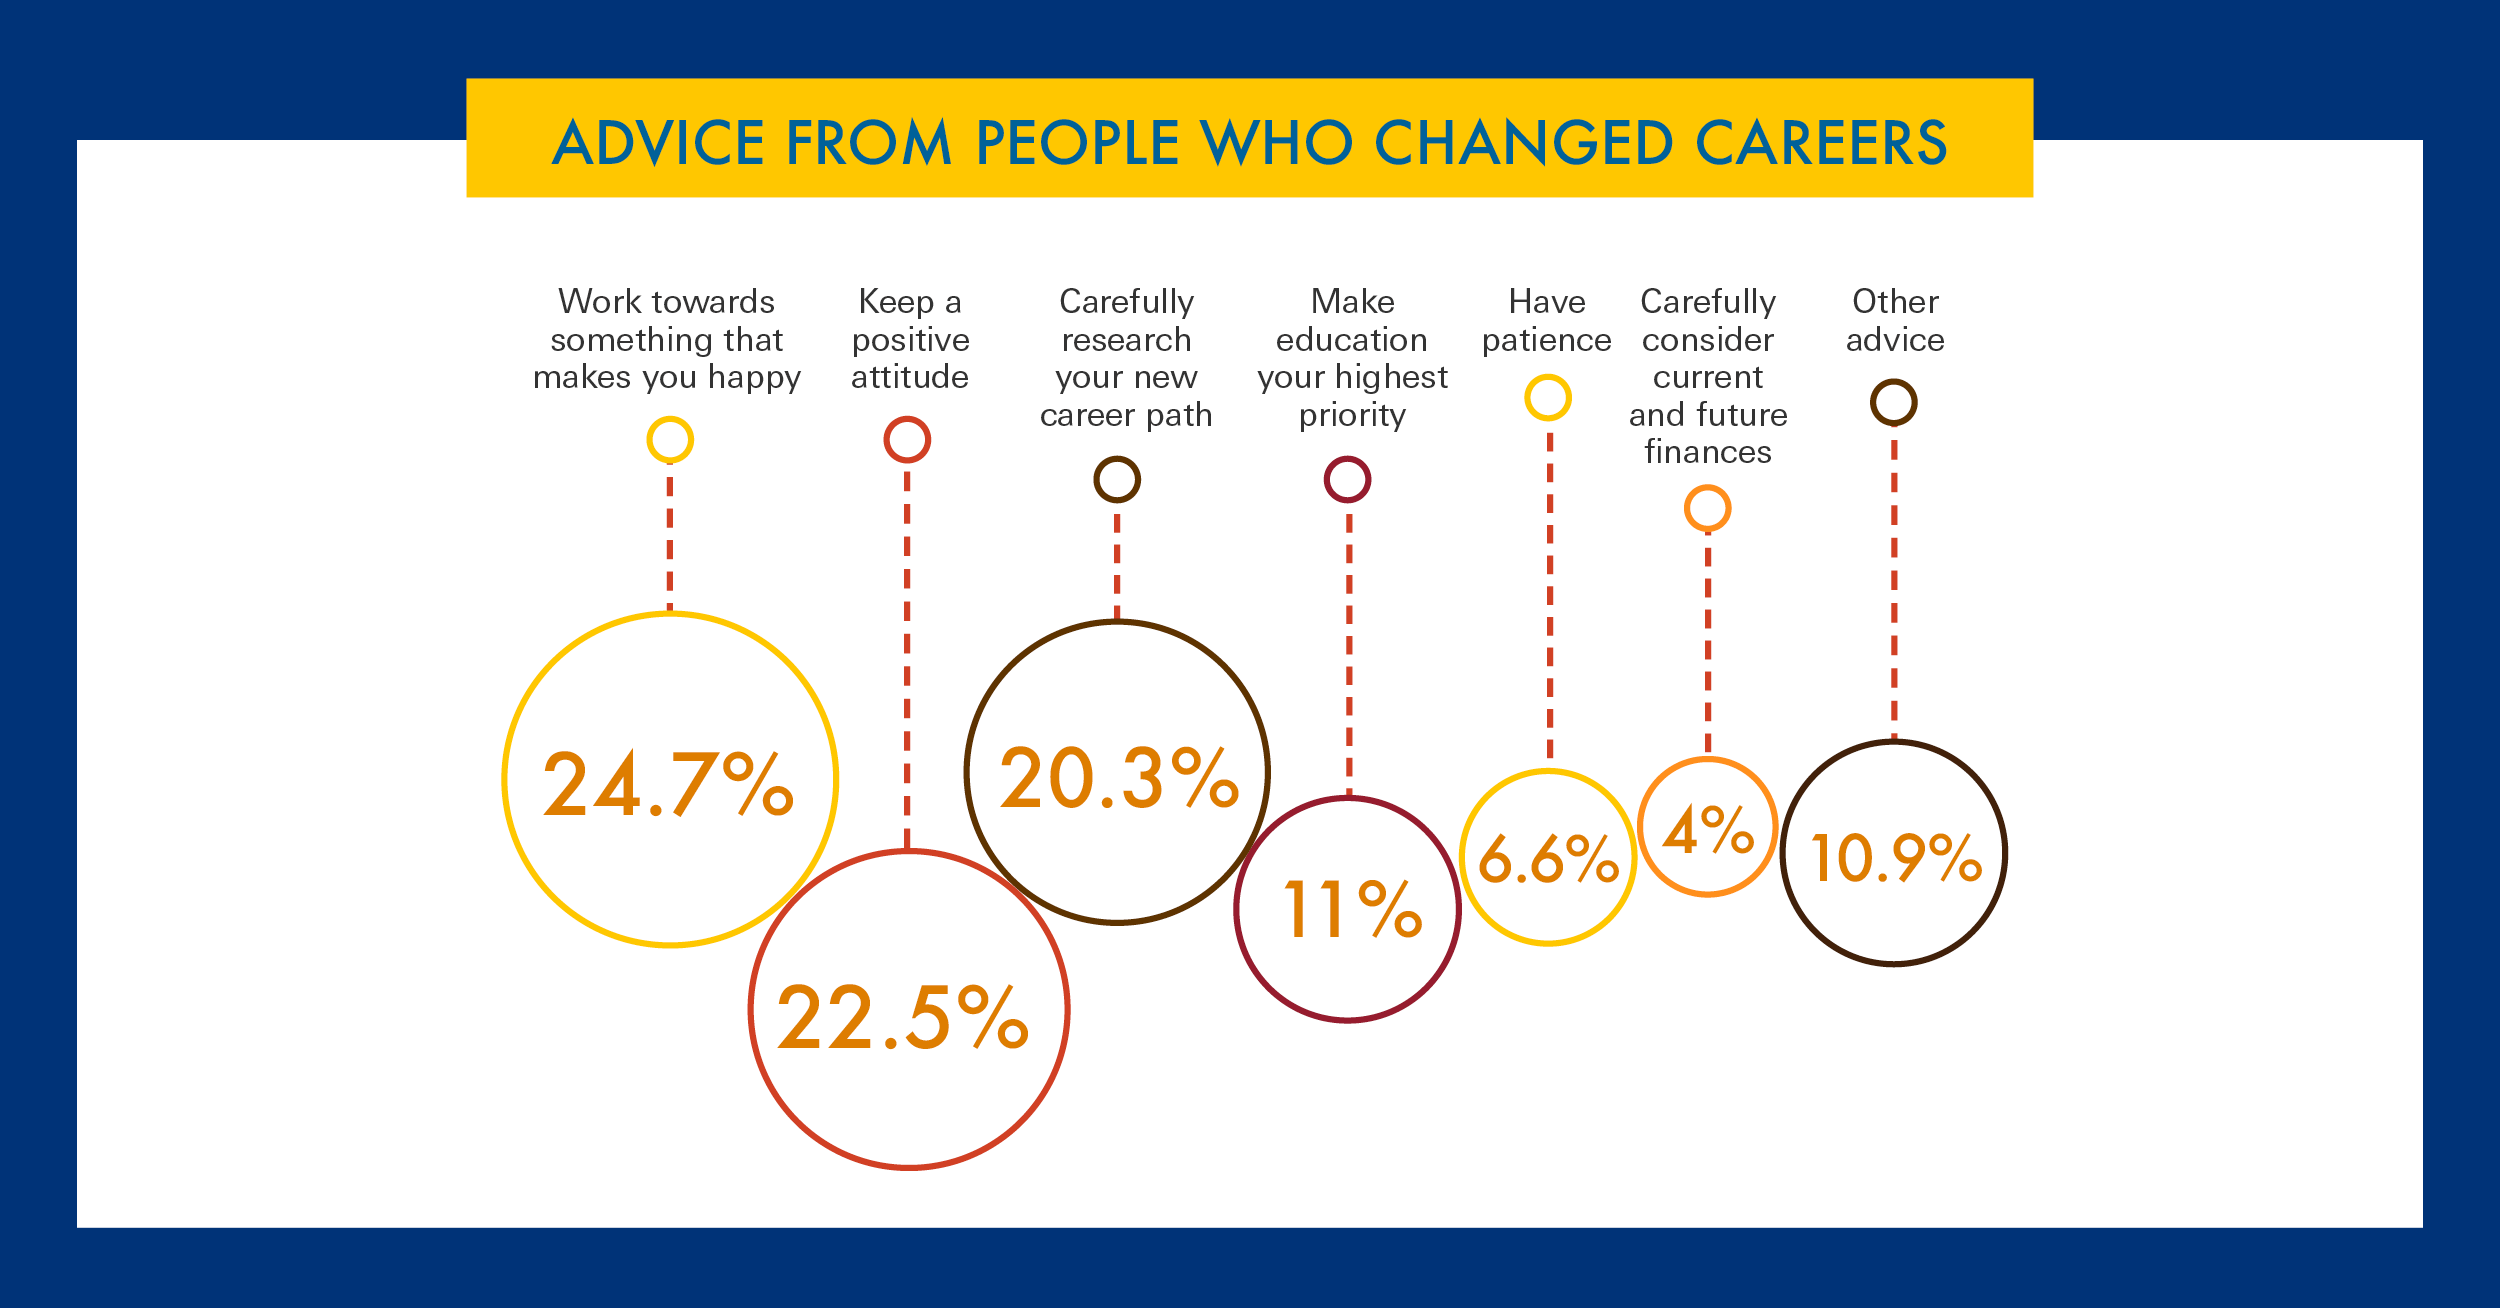 Advice from people who changed careers